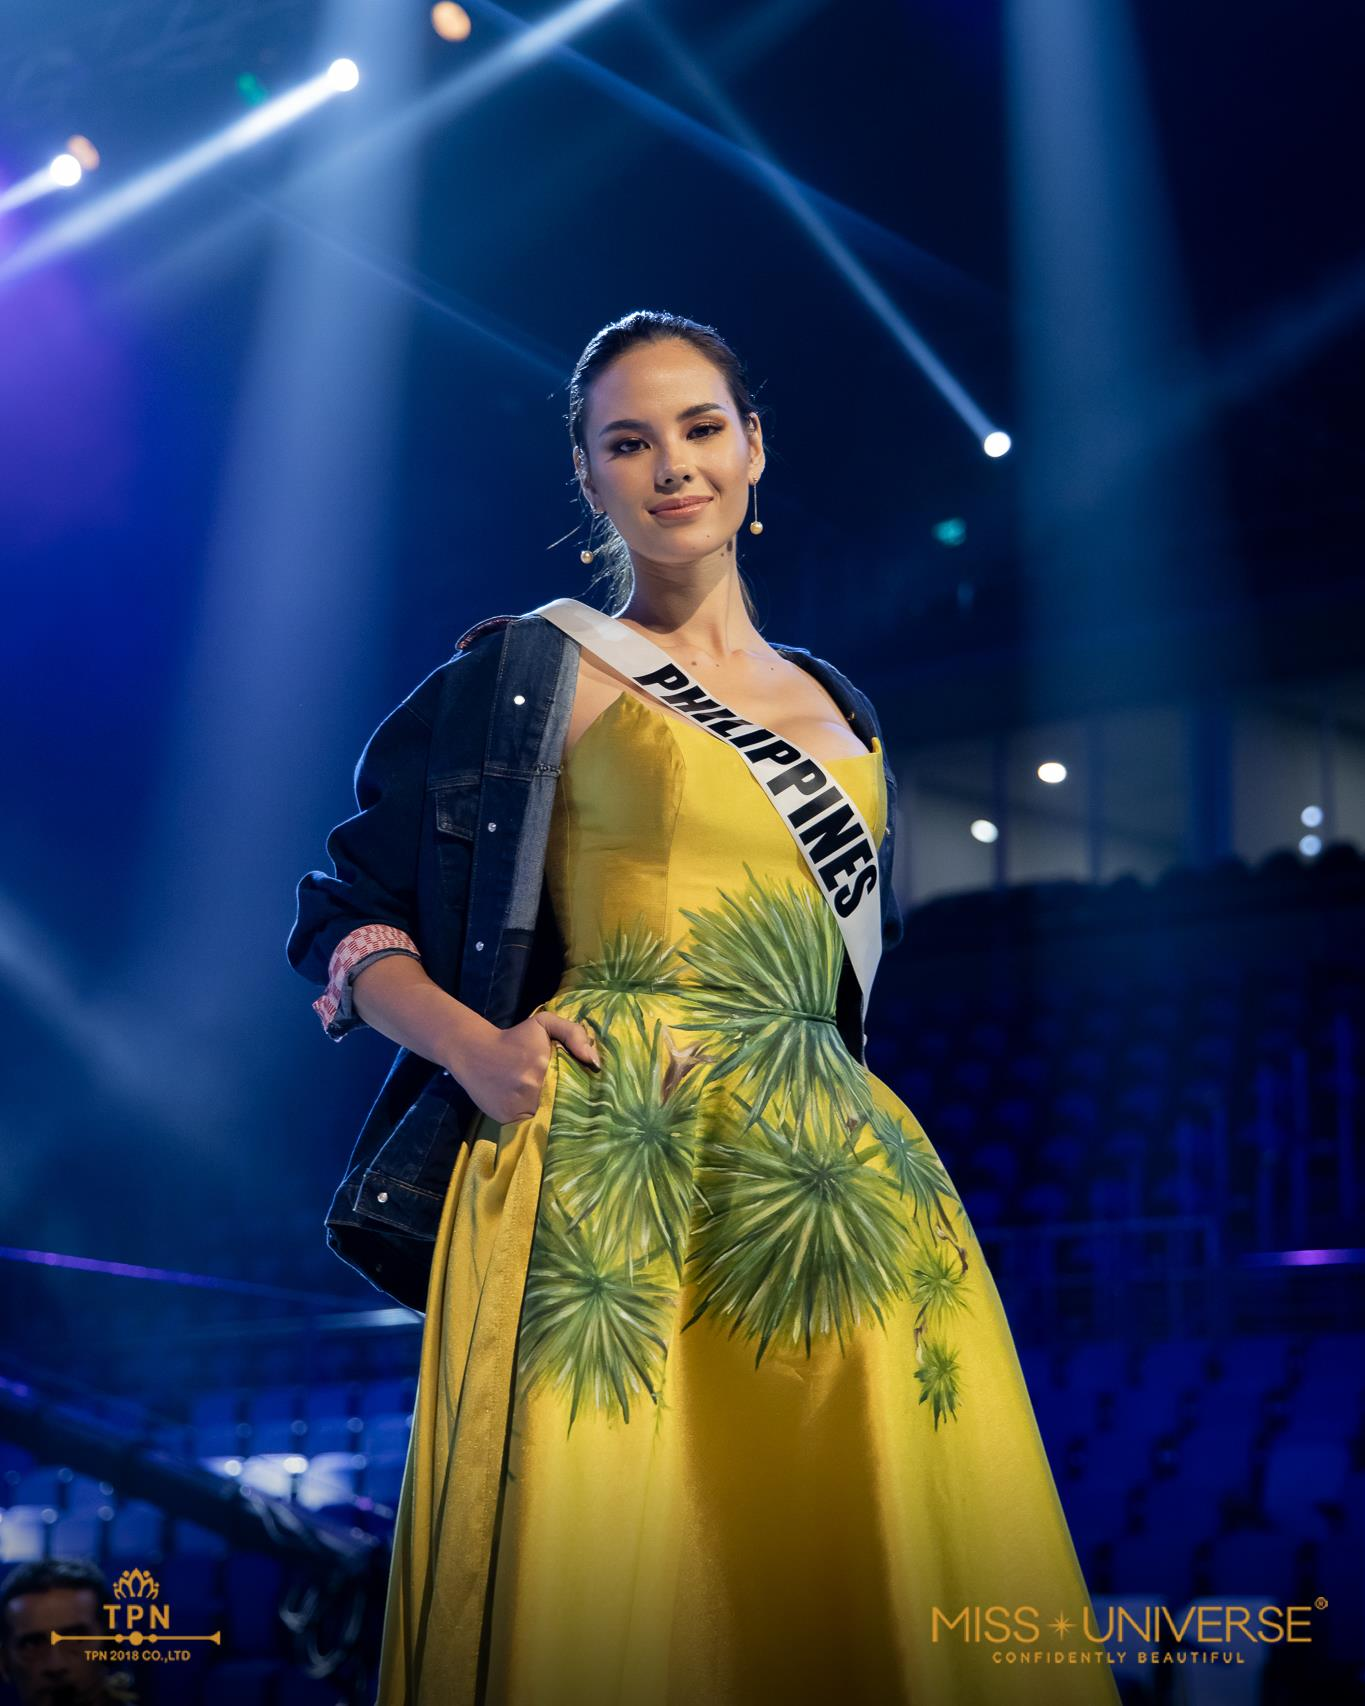 Photo from Facebook/Miss Universe Thailand page and TPN